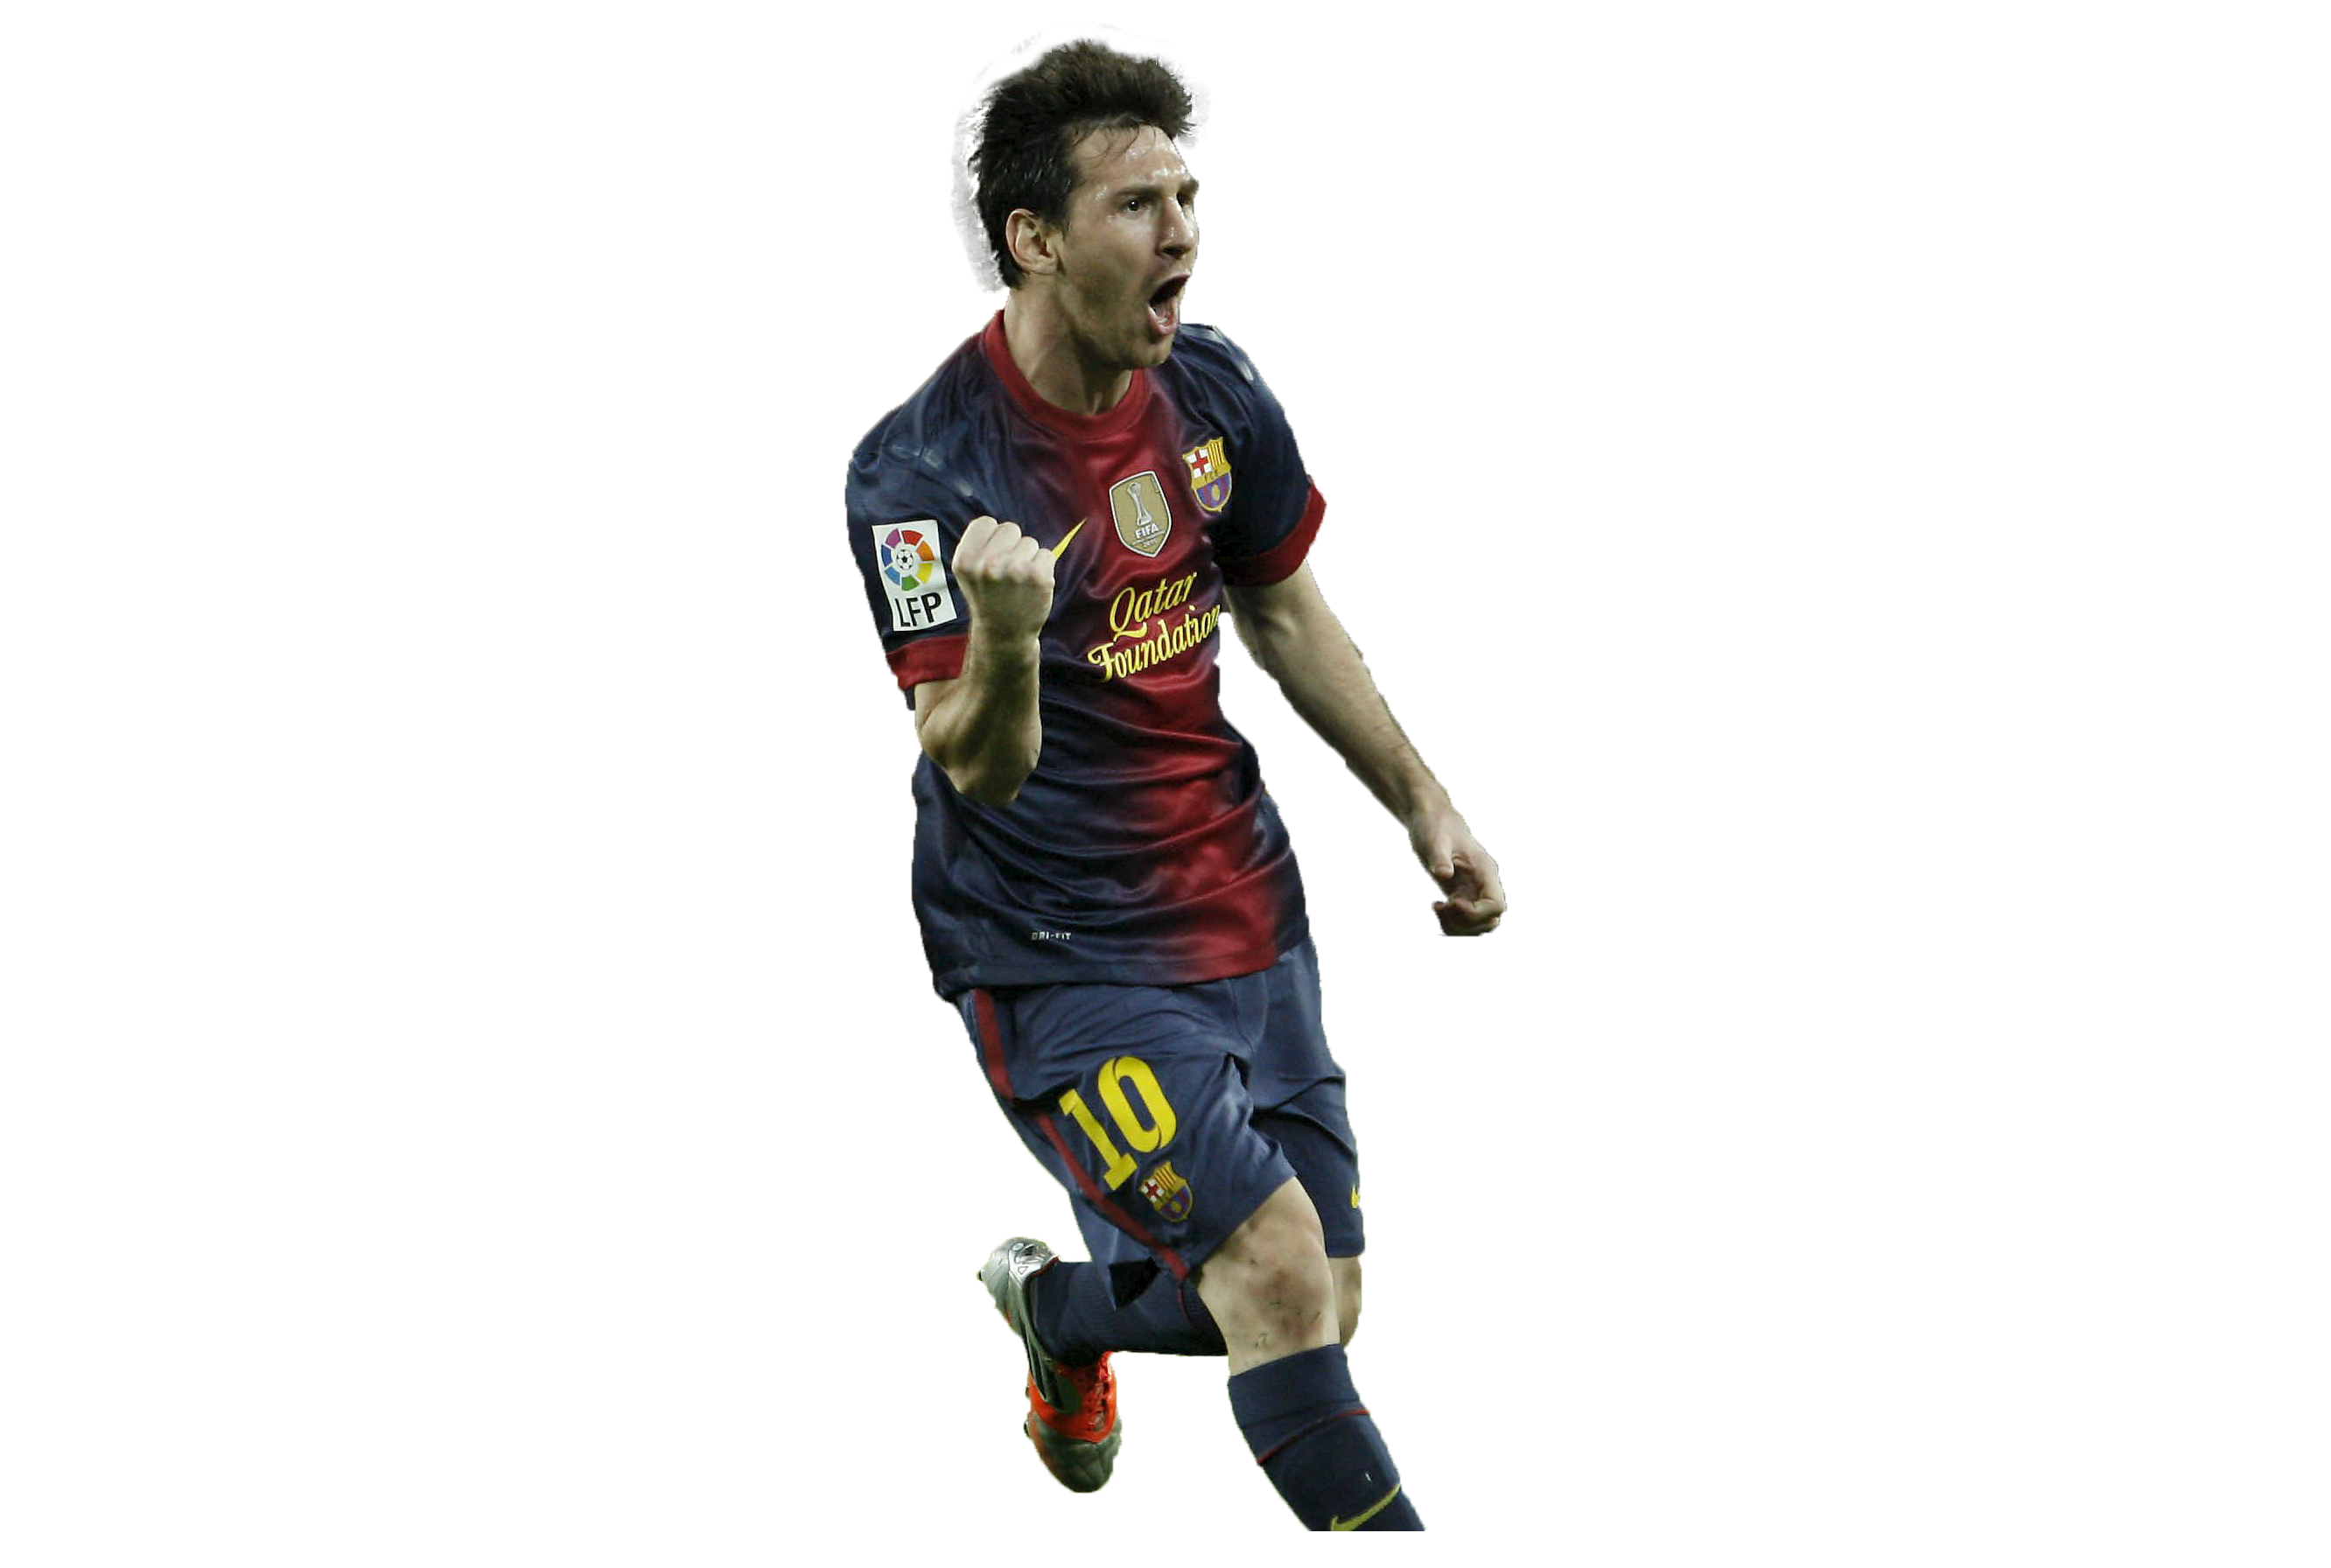 Soccer player messi png. Lionel hd mart sports